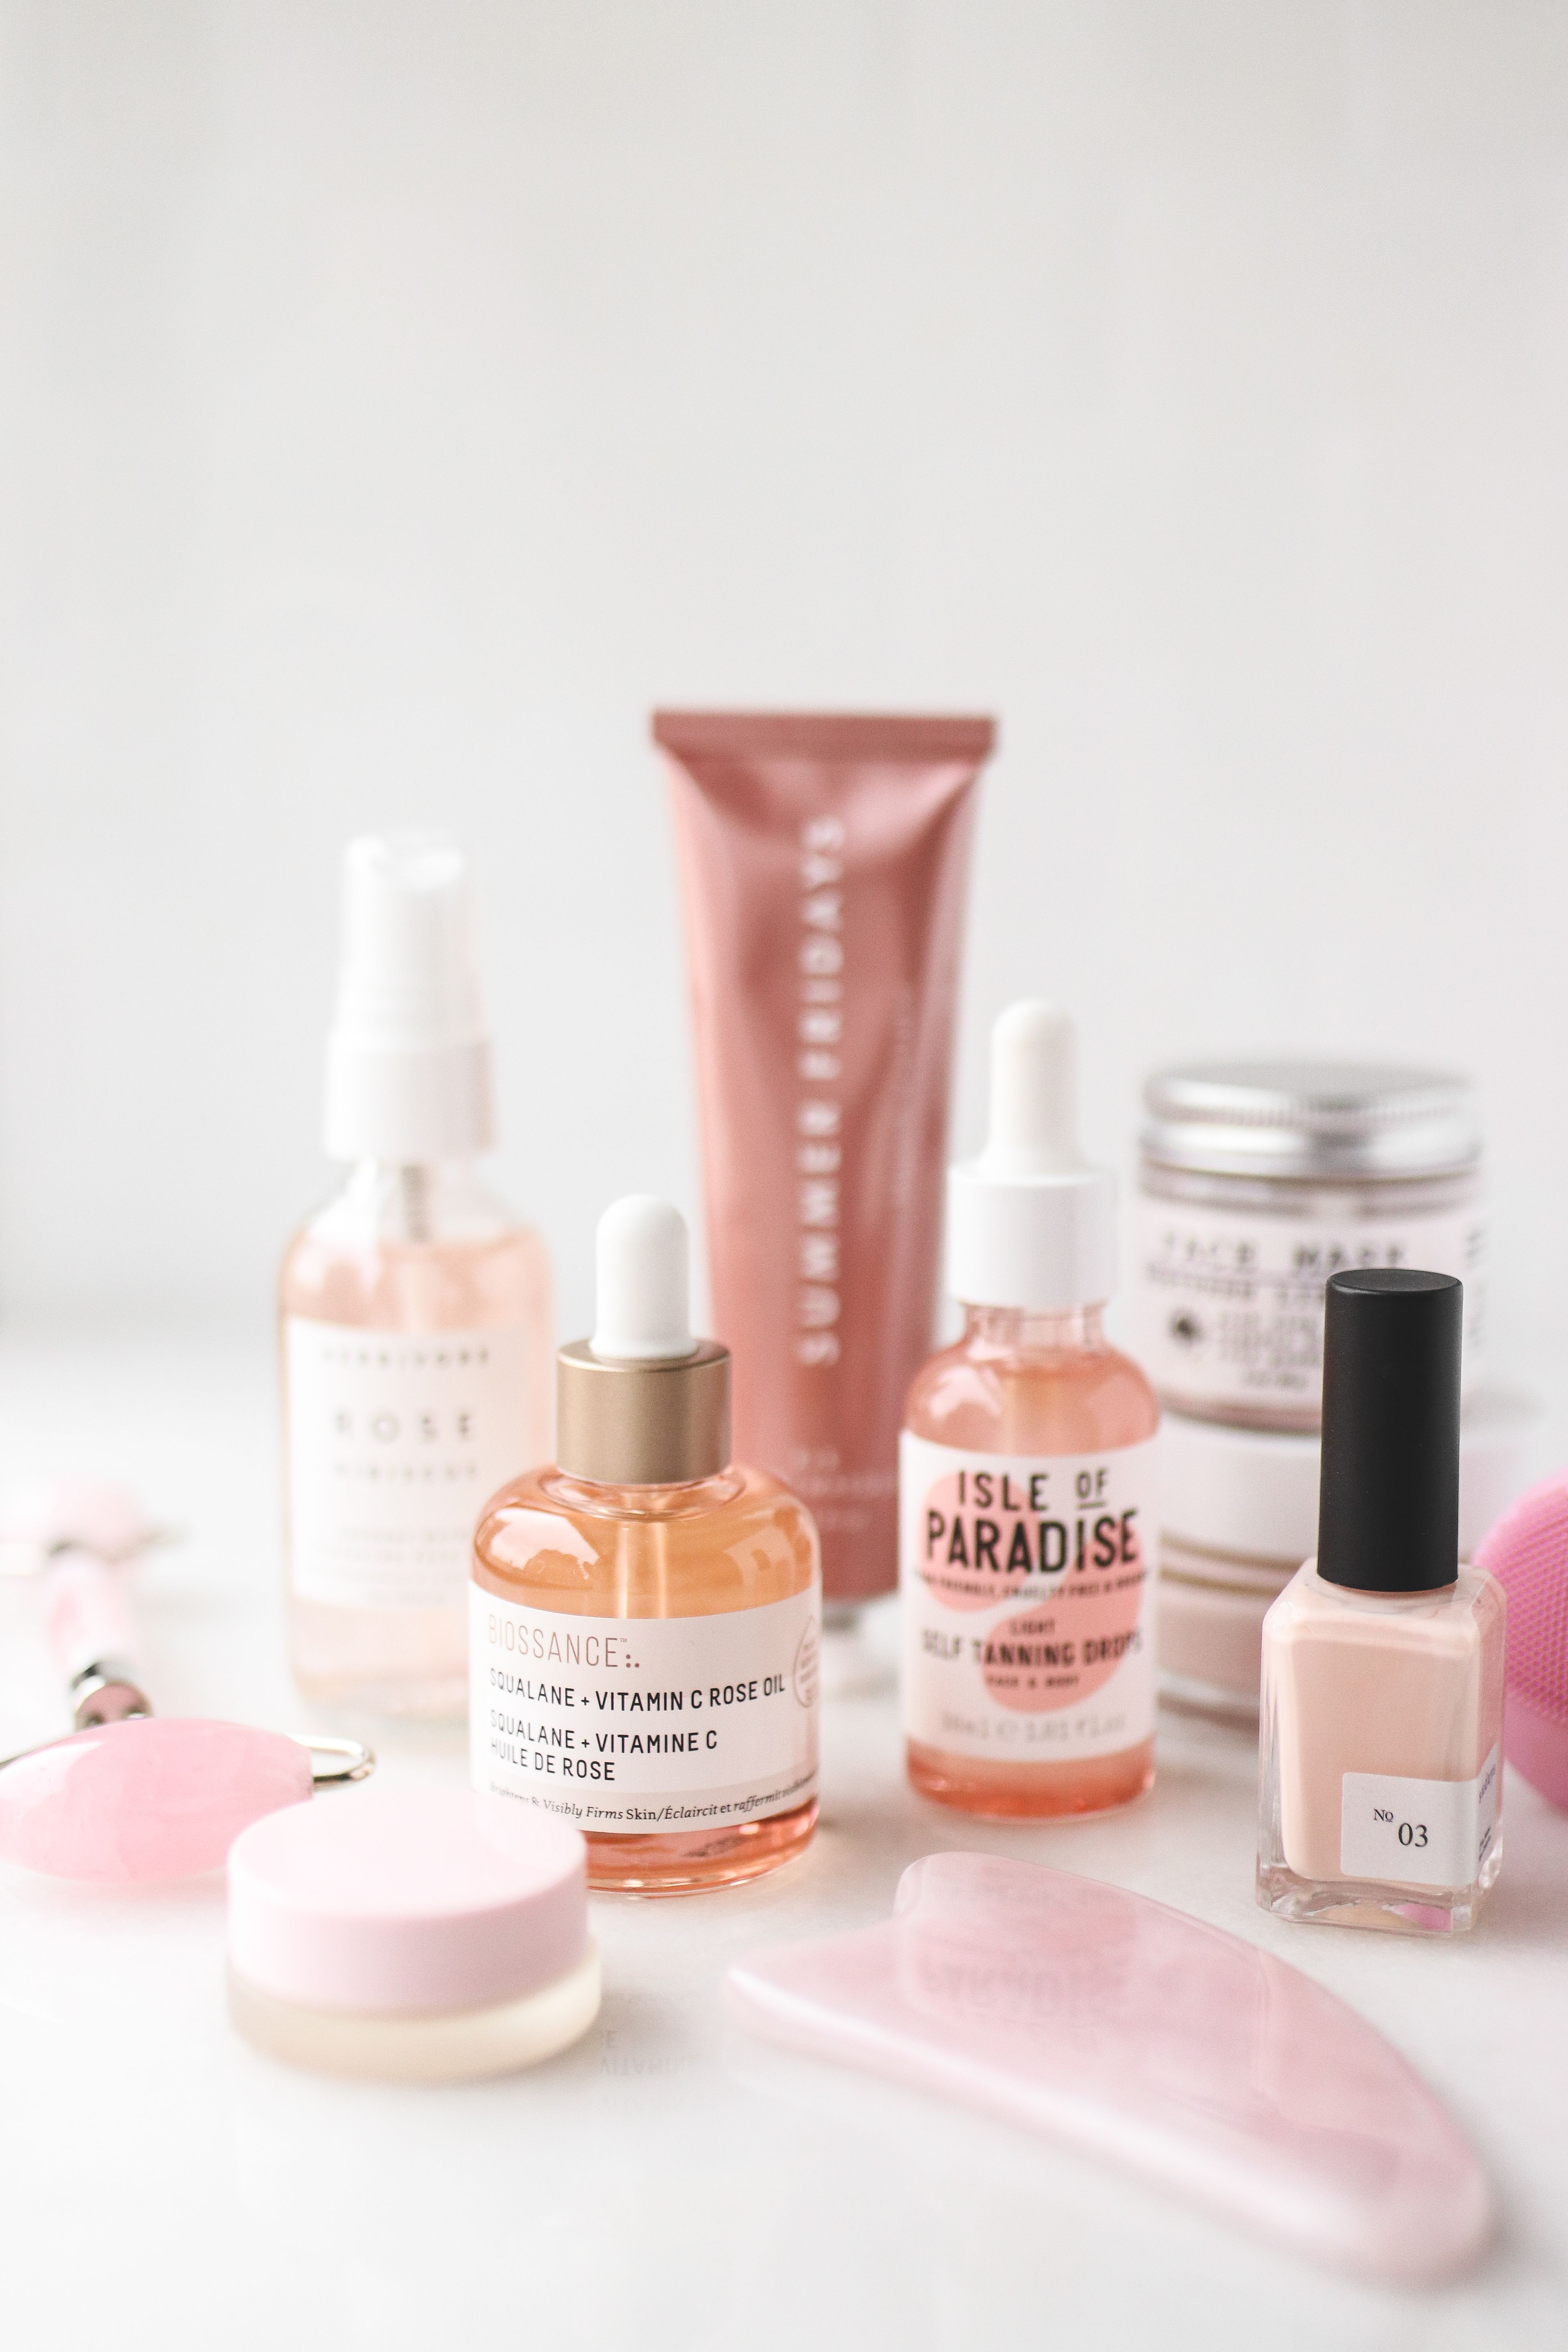 Clean, nontoxic and vegan skincare for the summer. Nailpolish, biossance oil, summer fridays R+R mask, frank and whit hibiscus mask, isle of paradise self tanner, hynt beauty concealer, herbivore rose spray and mount lai rose quartz tools. | veggiekinsblog.com | #selfcare #selflove #skincare #nontoxic #cleanbeauty #vegan #summerfridays #makeup #shelfie #guasha #pink #biossance